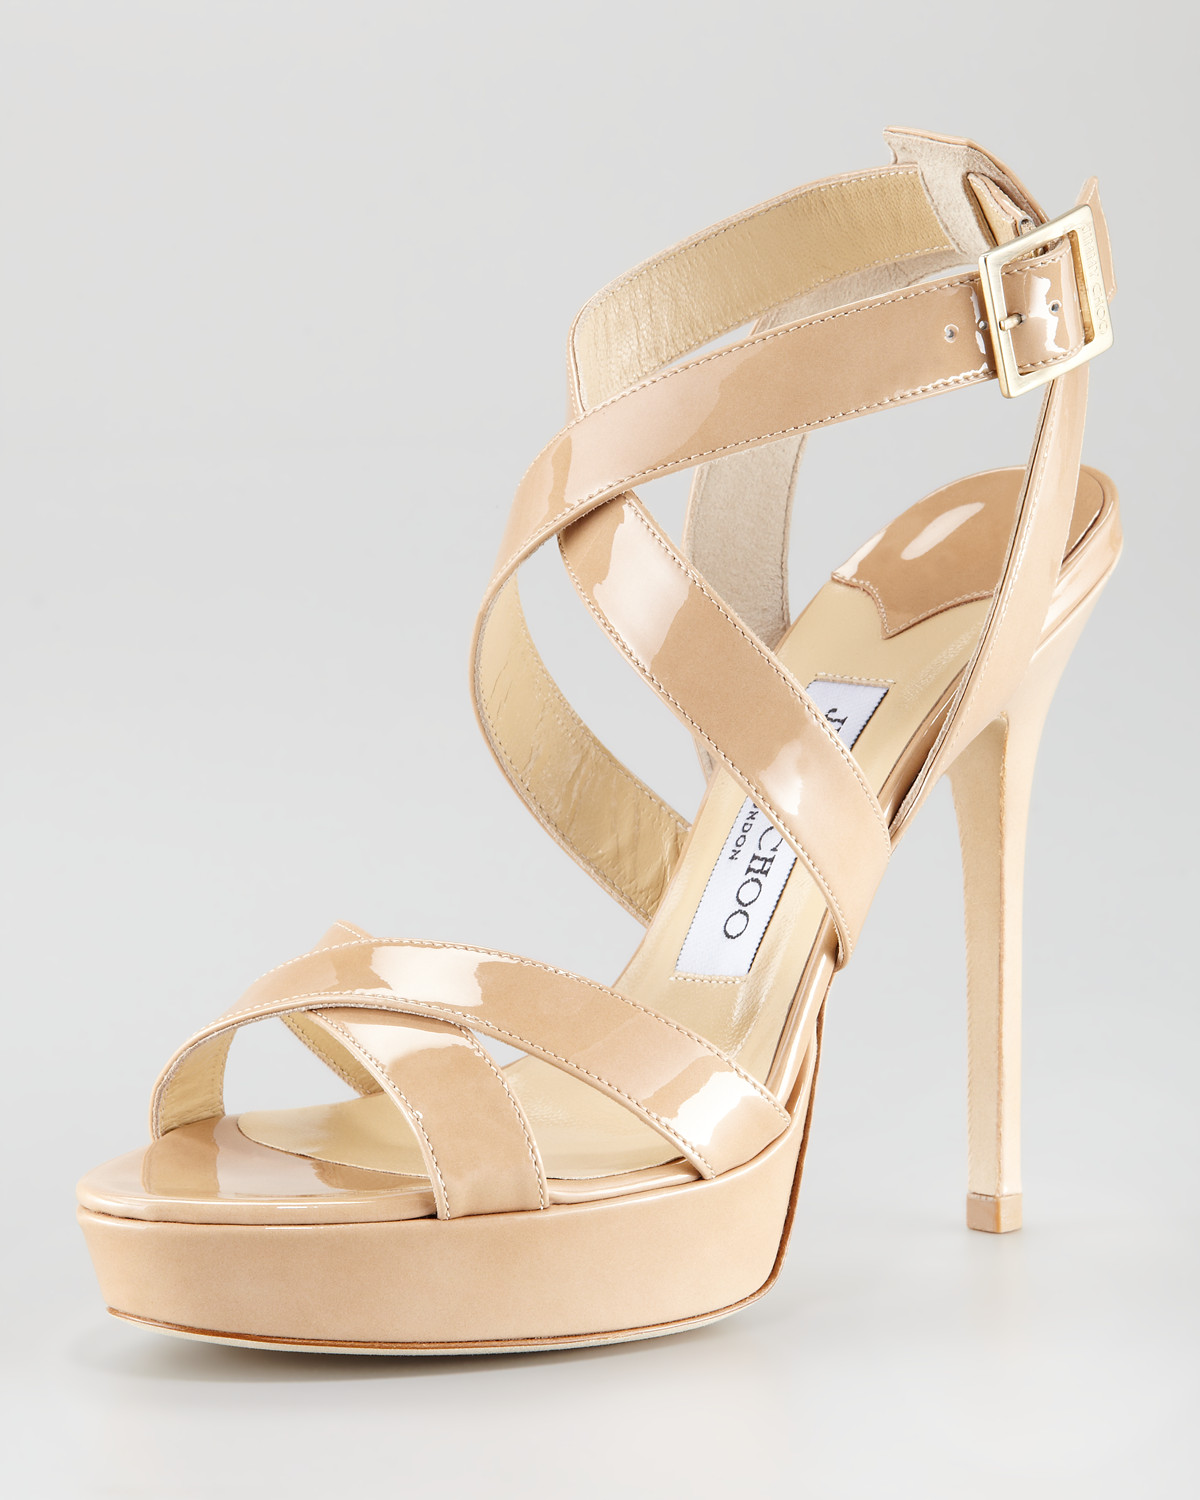 01b834f456a2 Lyst - Jimmy Choo Nude Patent Leather Vamp Platform Sandals in Natural